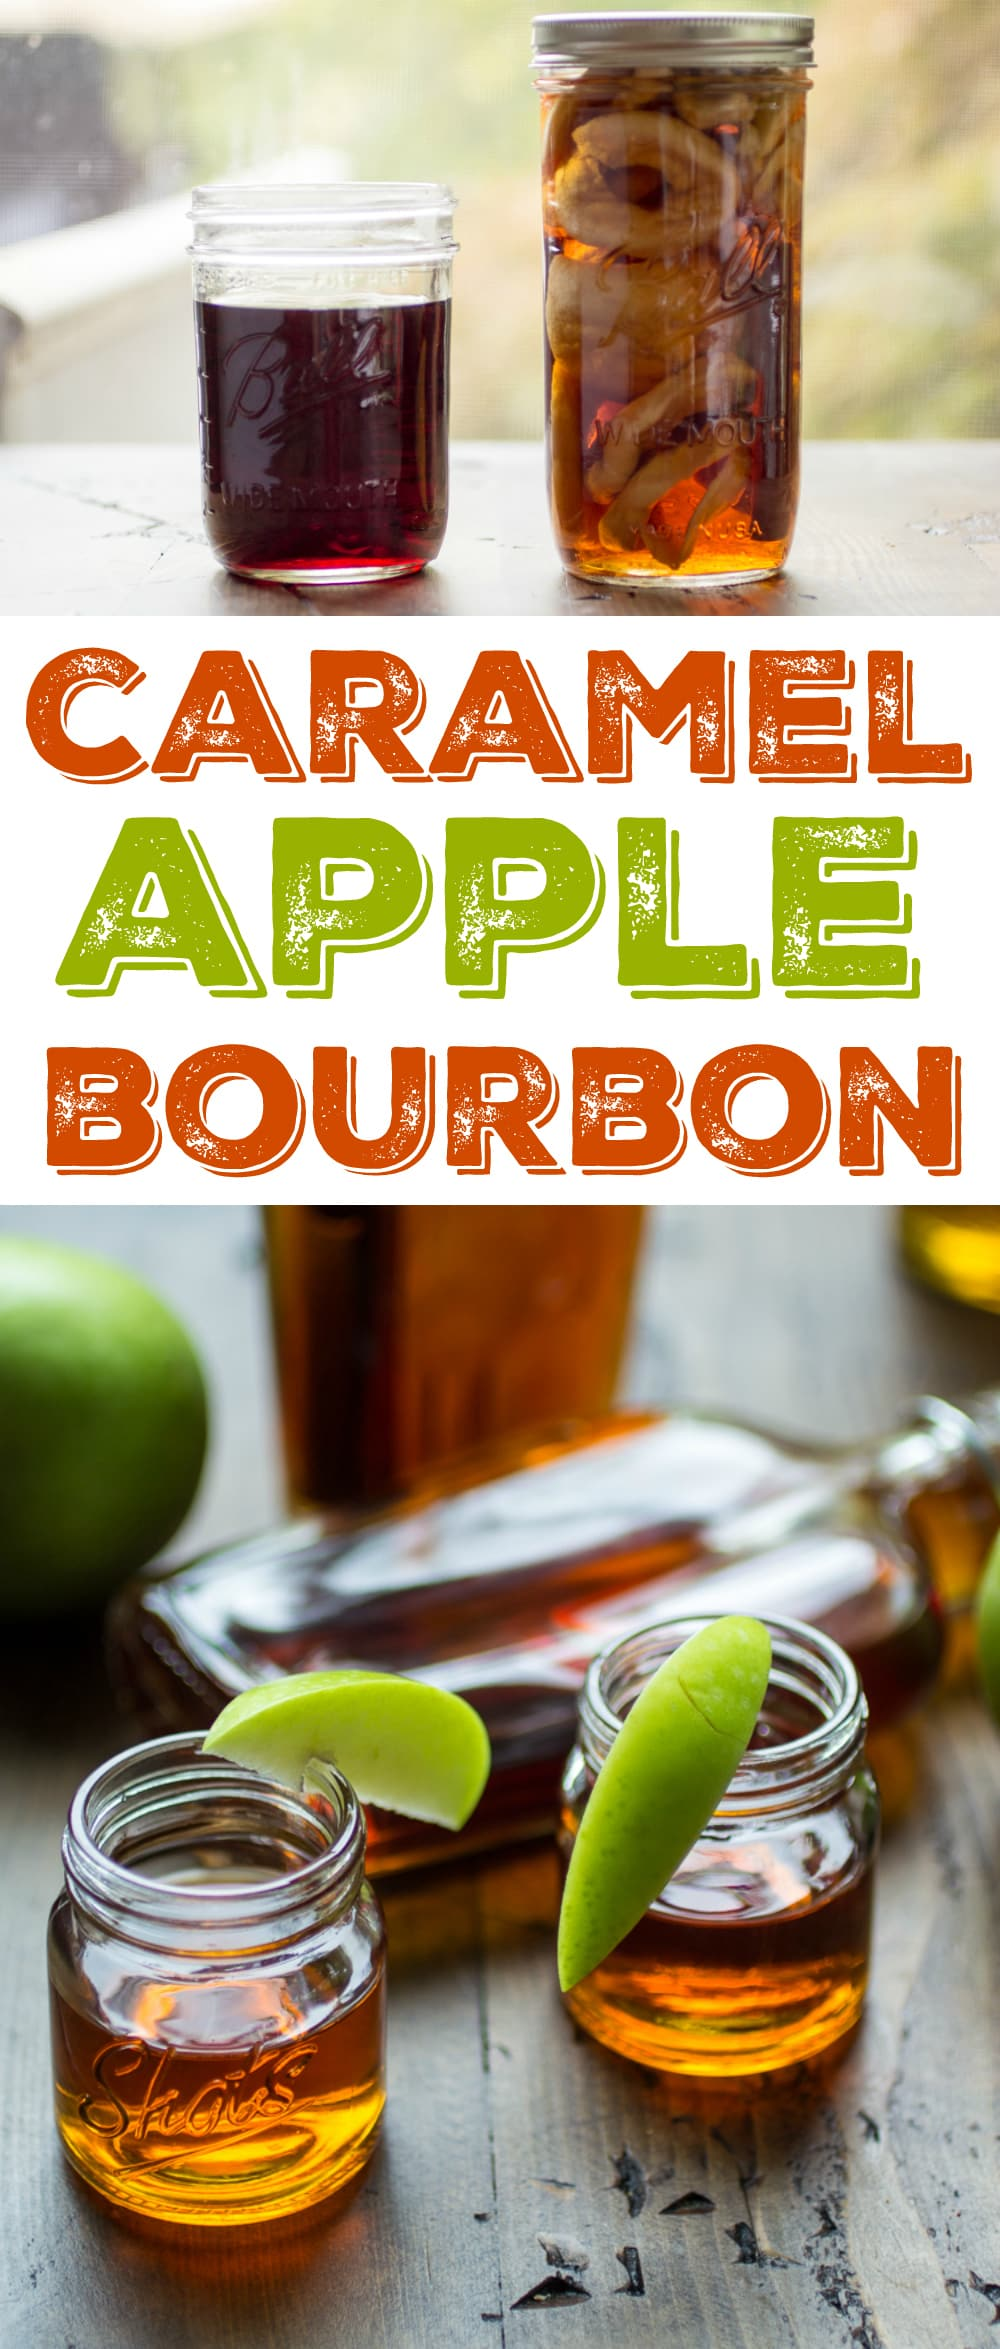 A sip of Caramel Apple Bourbon is like a sip of everything autumn! Bring a flask to the bonfire and soak up the best of the season.